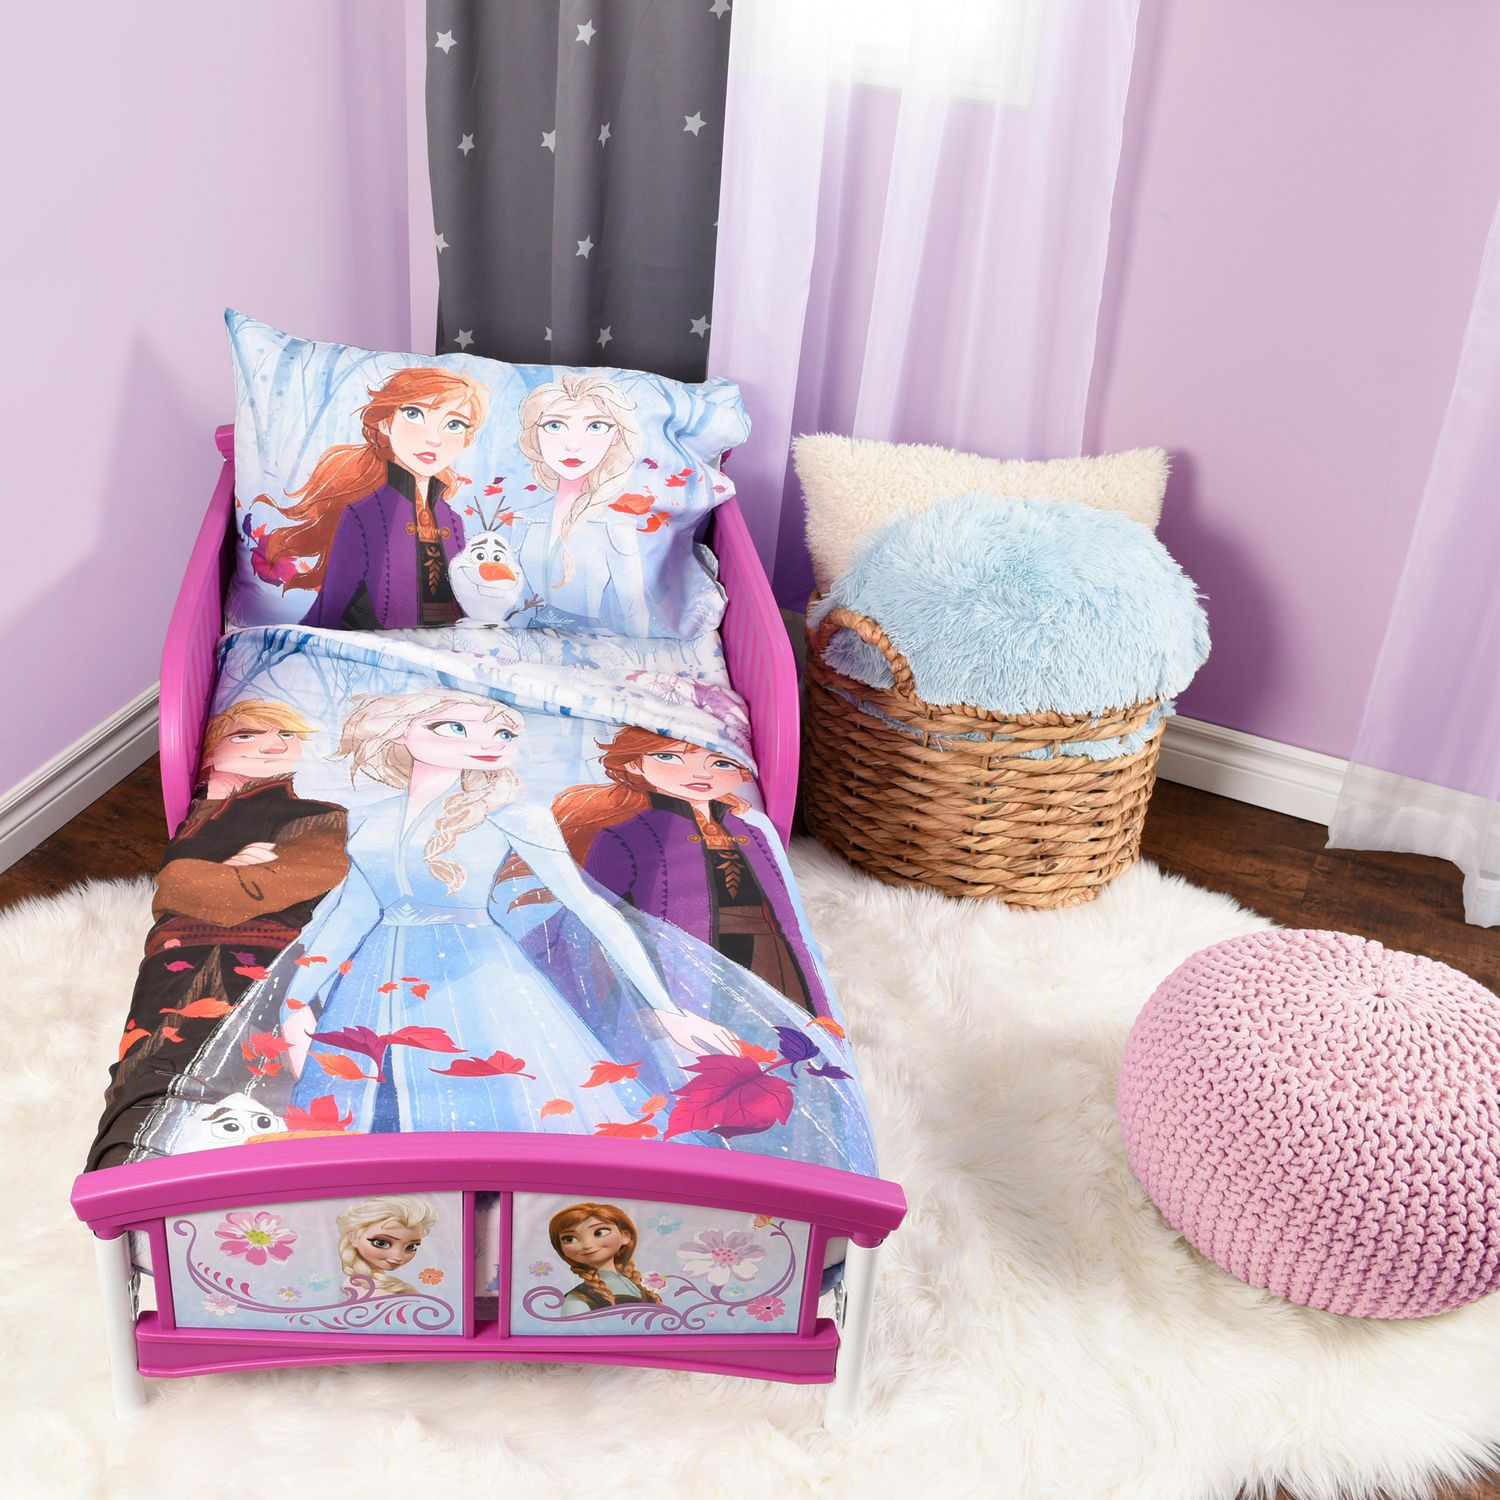 Disney Frozen Ii 3 Piece Toddler Bedding Set Walmart Canada